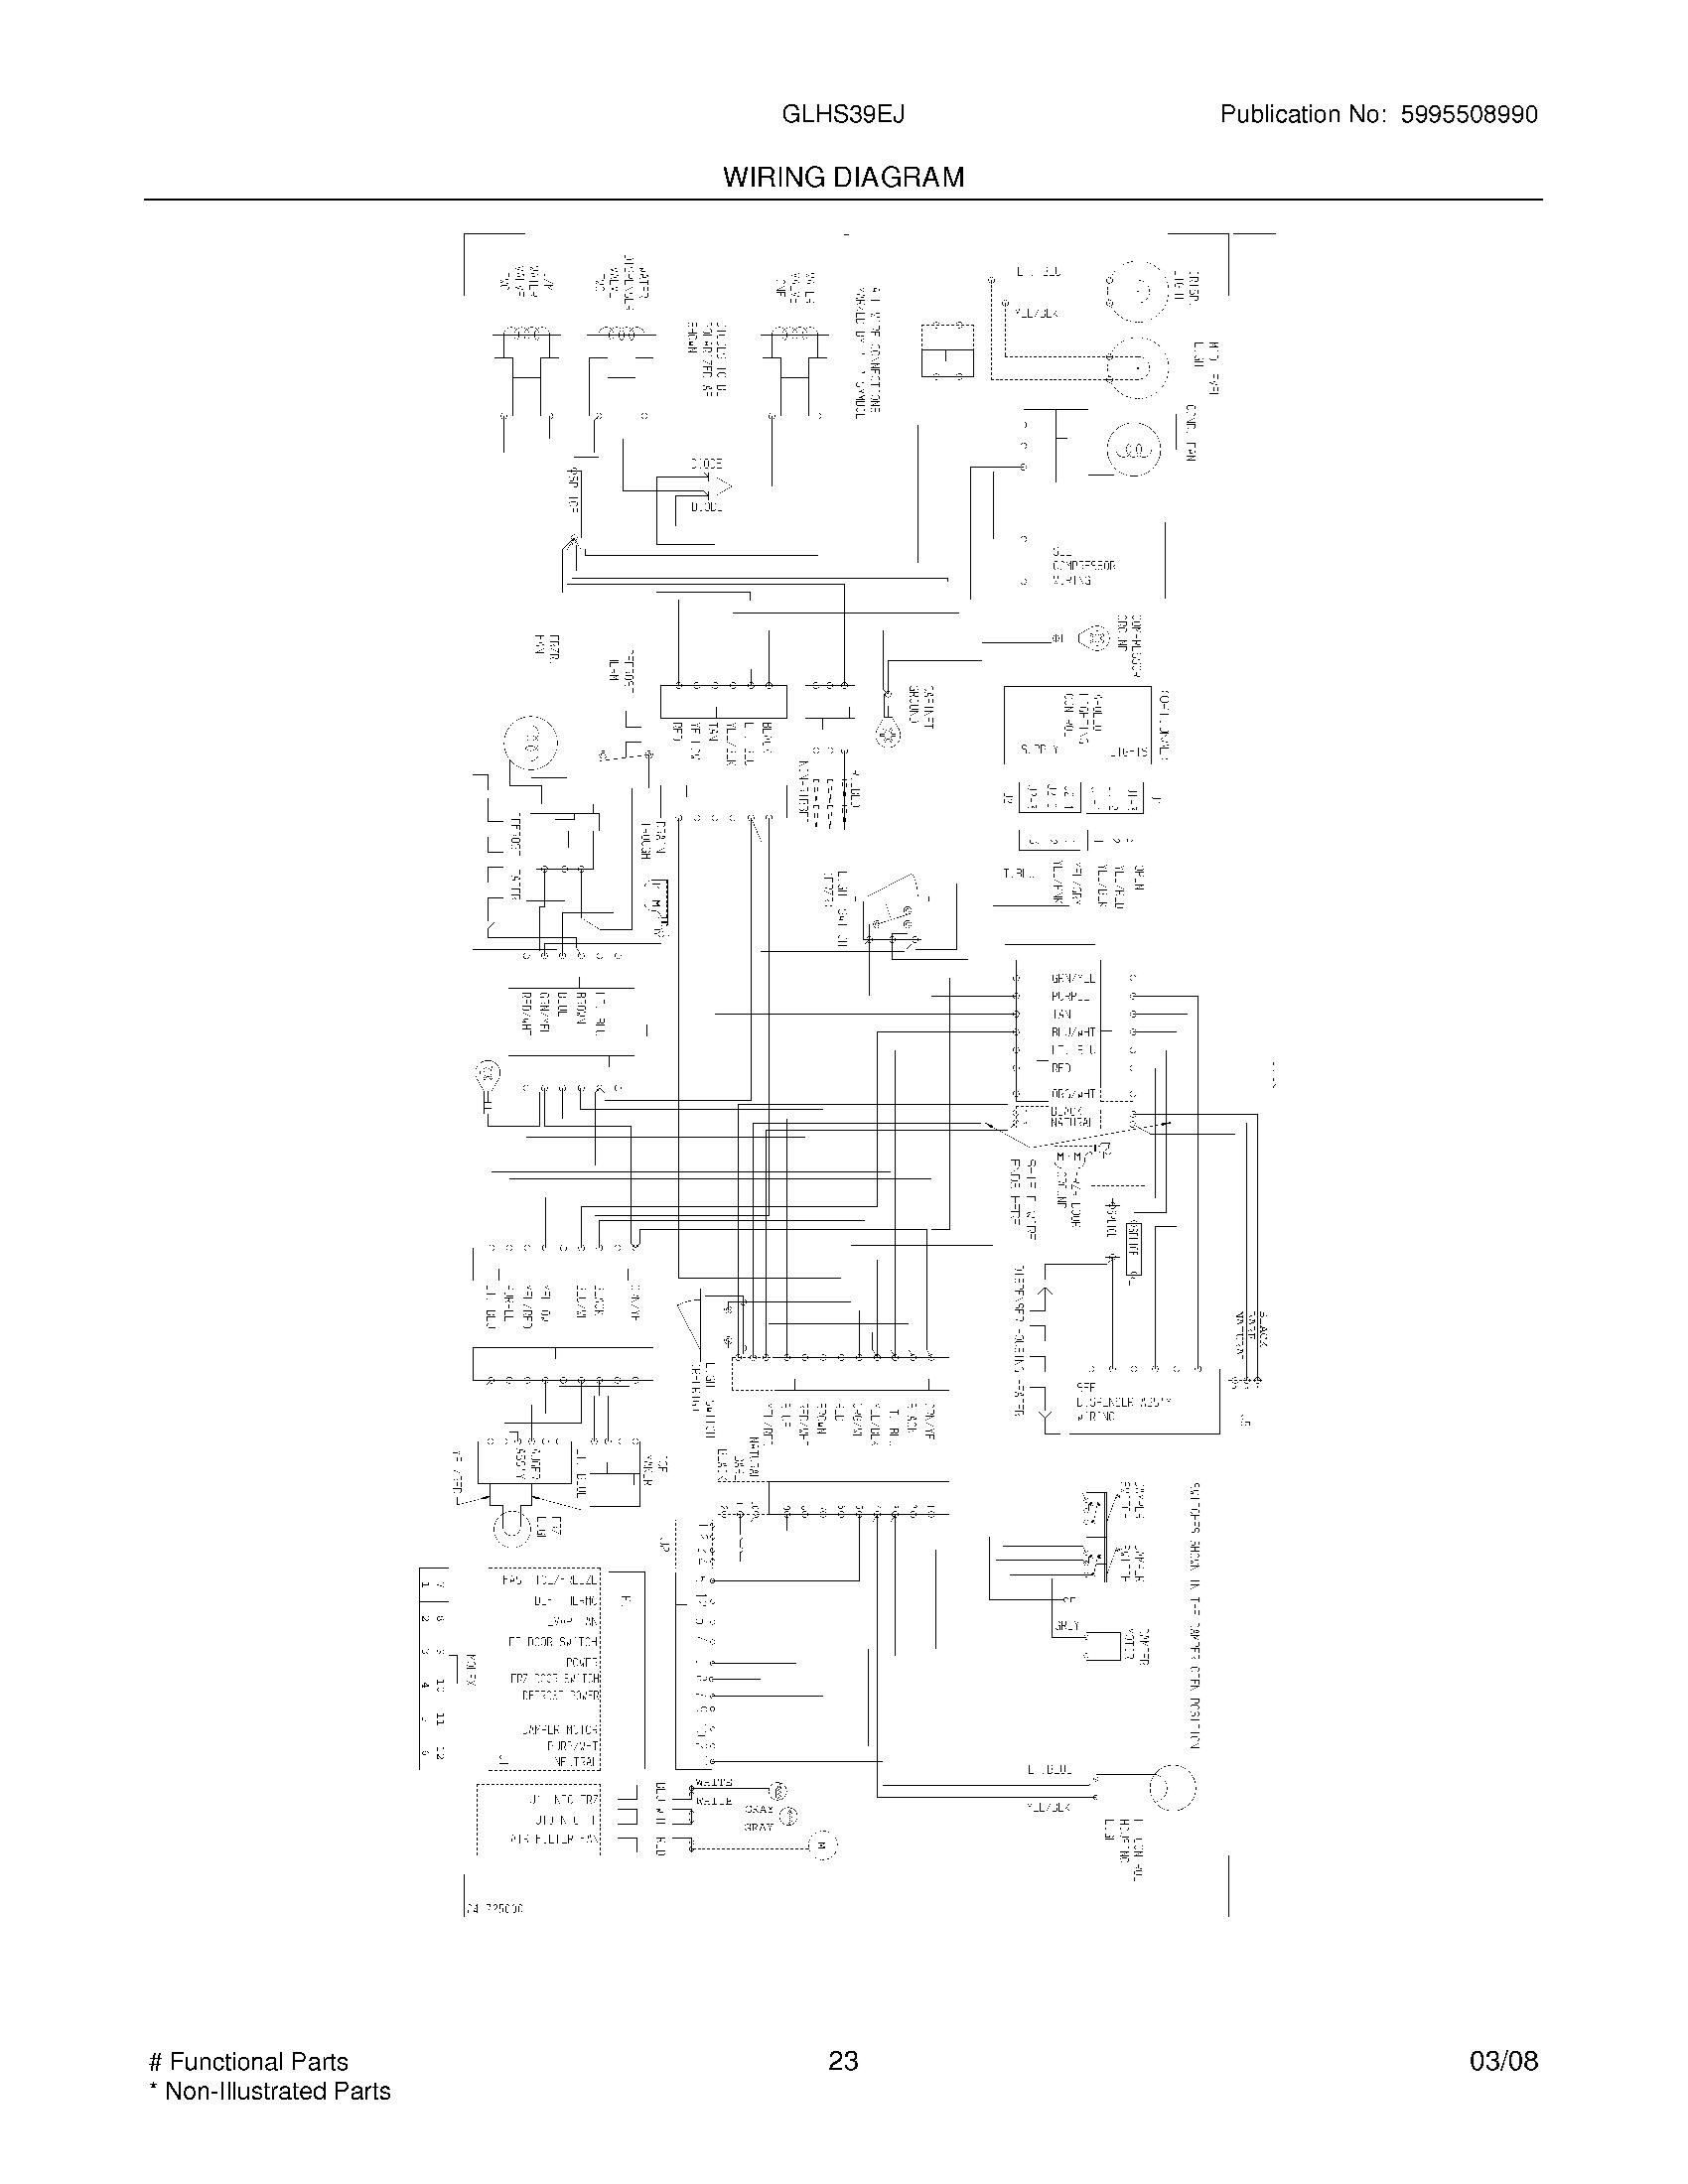 ElectroluxImg_19000101 20150717_00120512?width=250 air purifier wiring diagram wiring diagram and fuse box air purifier wiring diagram at panicattacktreatment.co